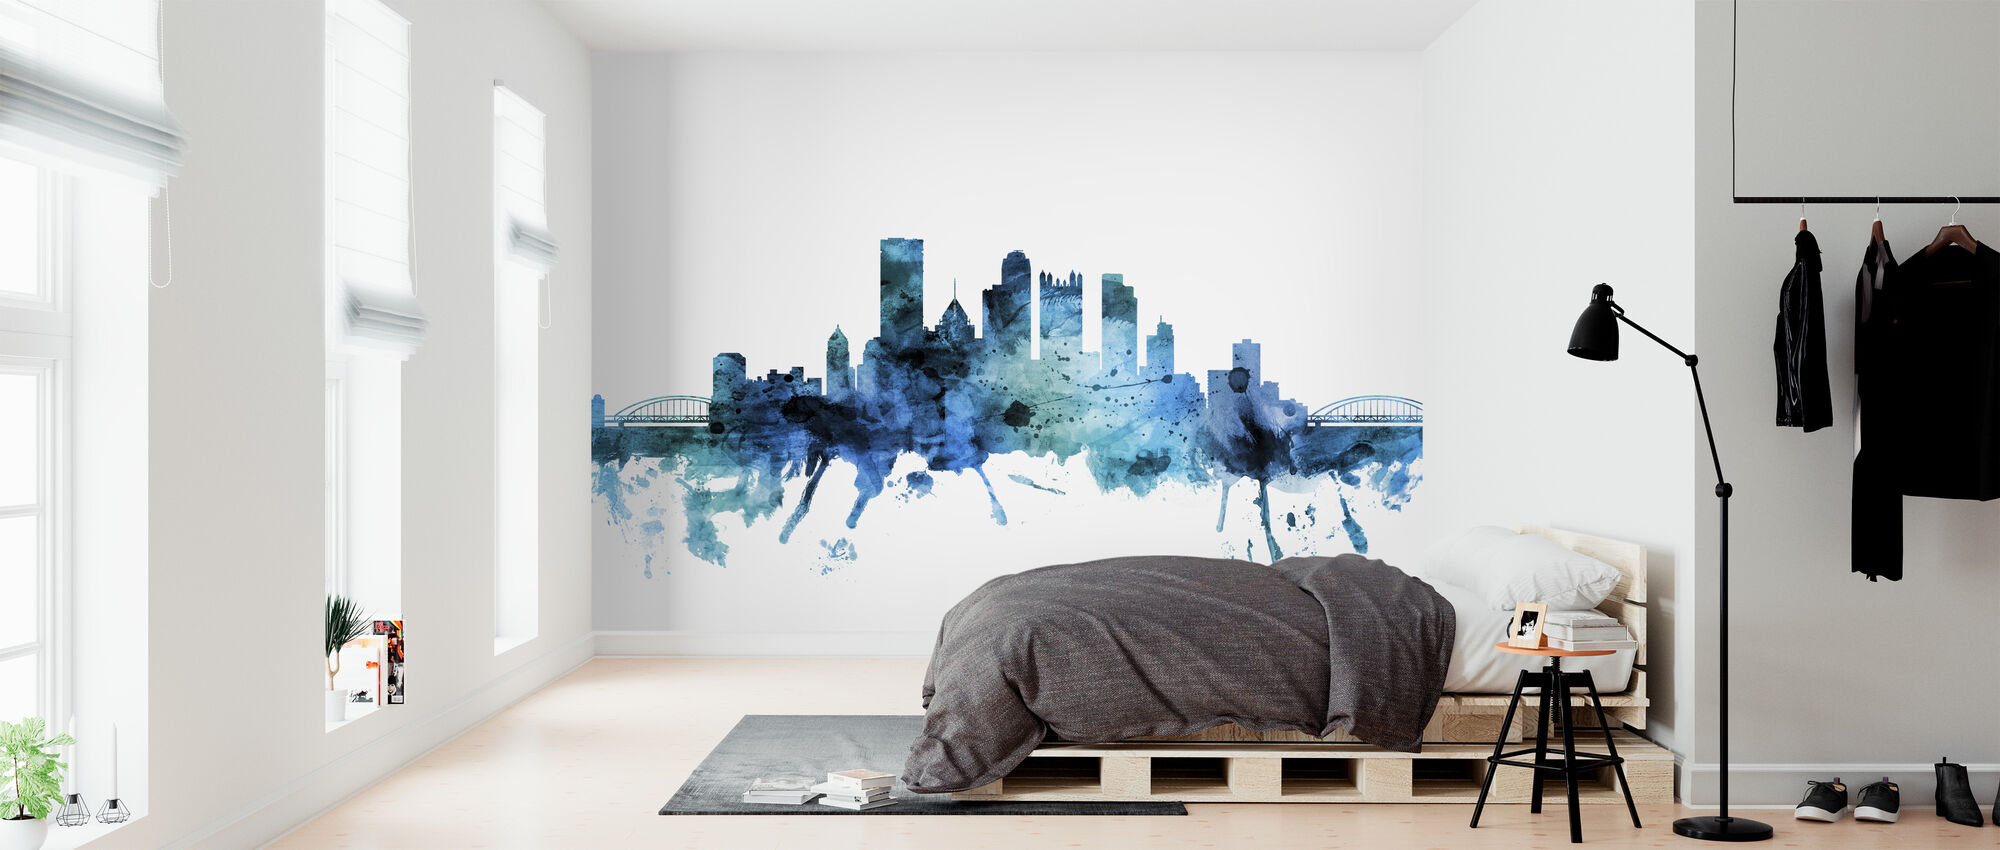 Pittsburgh Pennsylvania Skyline - Wallpaper - Bedroom